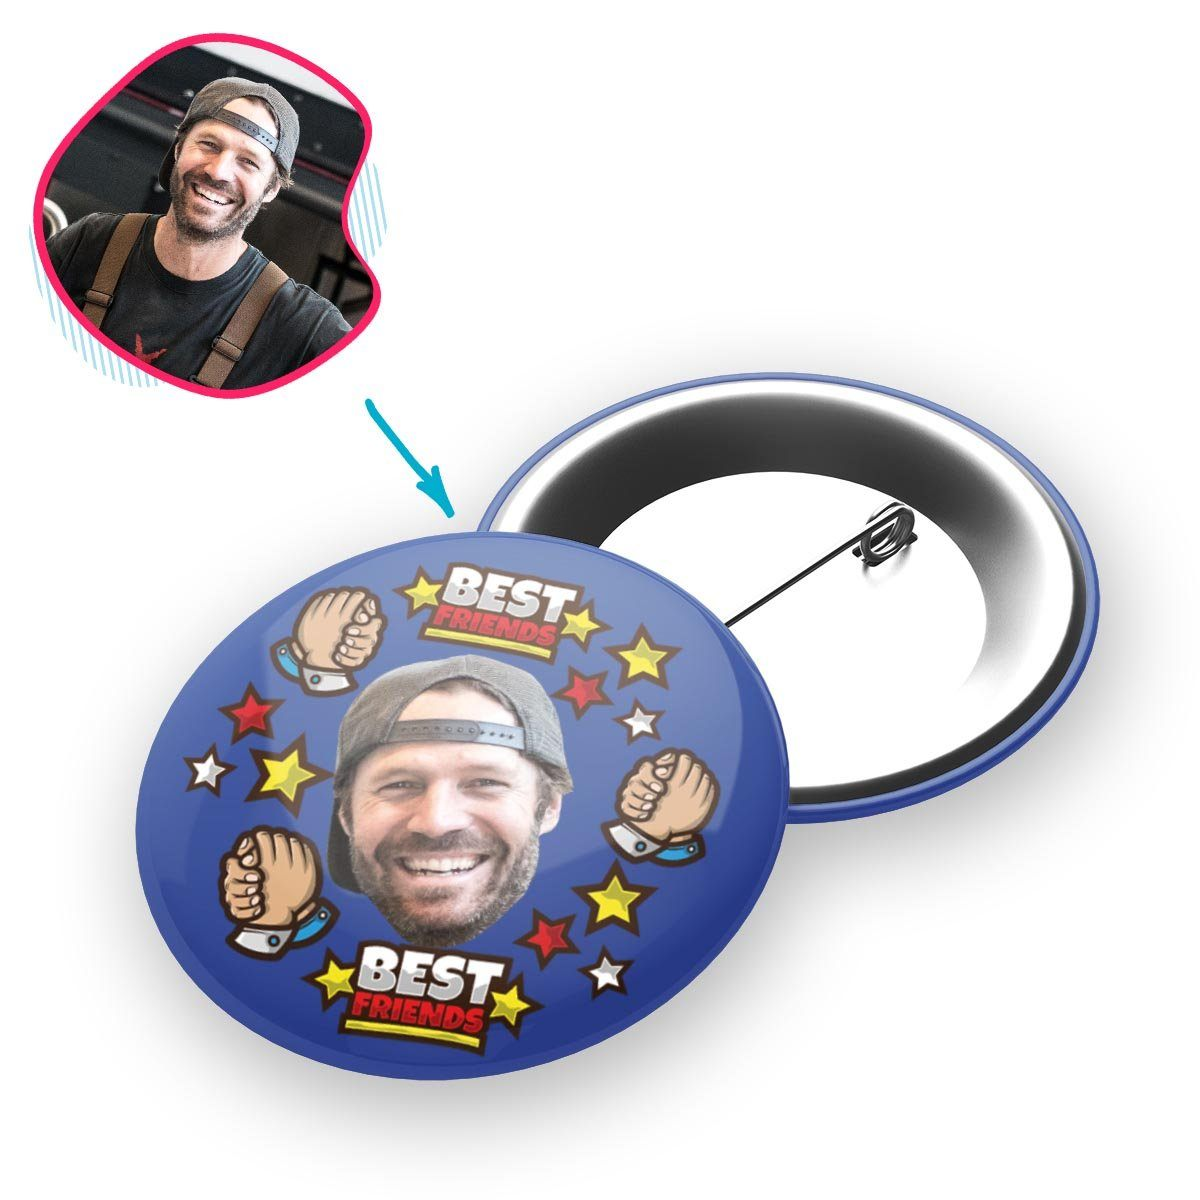 darkblue Best Friends pin personalized with photo of face printed on it